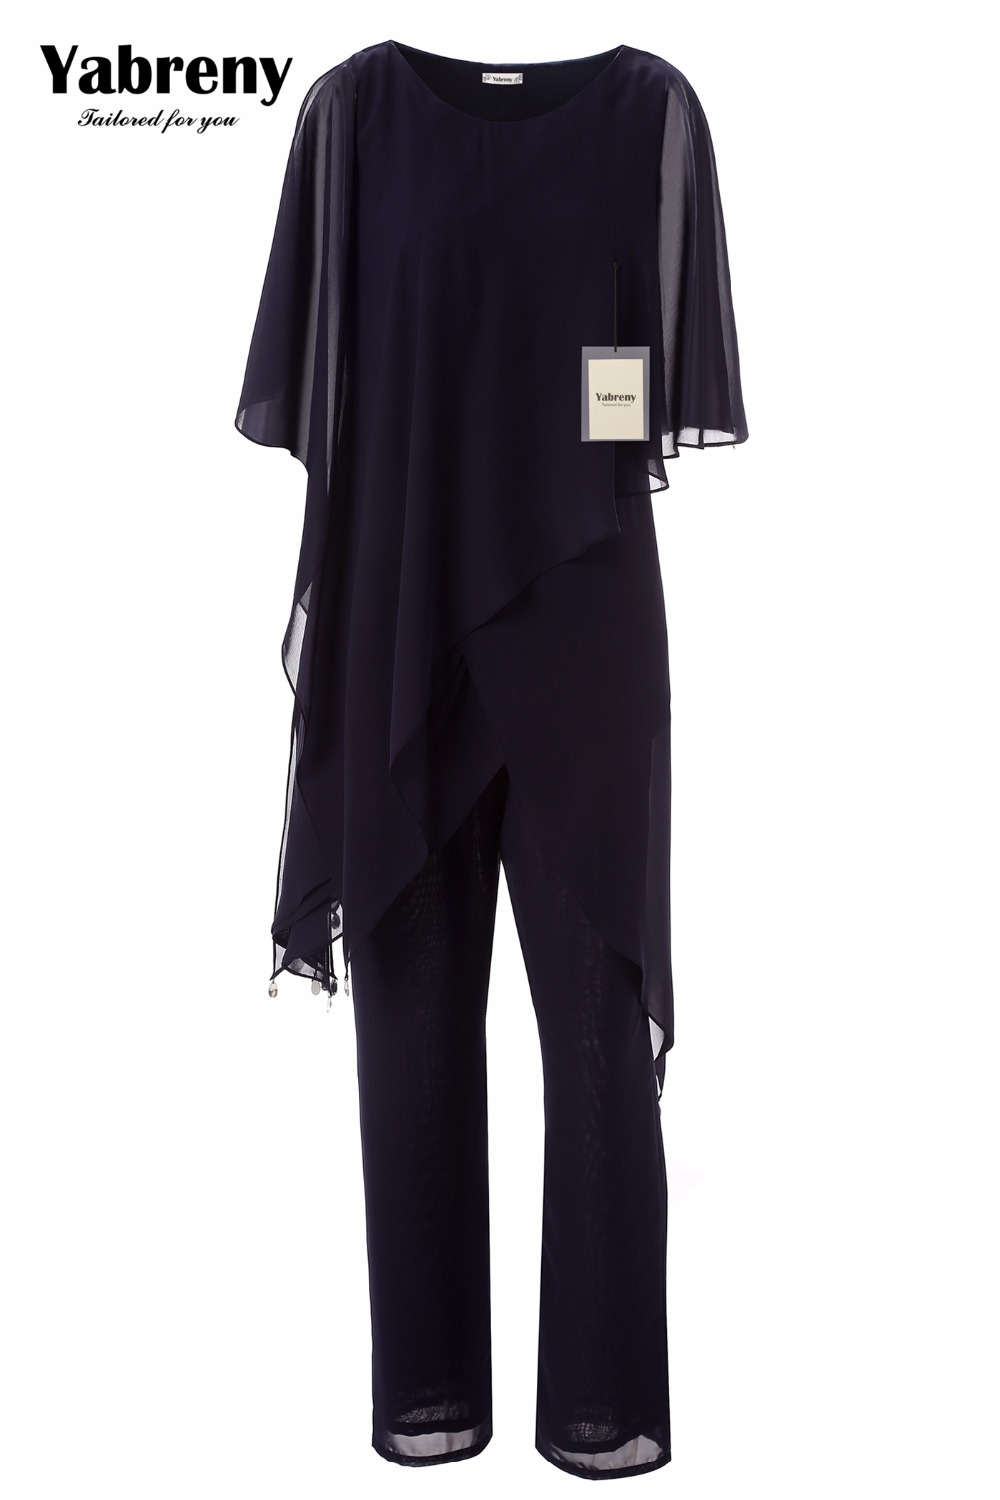 Yabreny New Arrival Dark Navy Chiffon Two Piece Mother Of The Bride Pantsuit Irregular Hem MT0017013-1